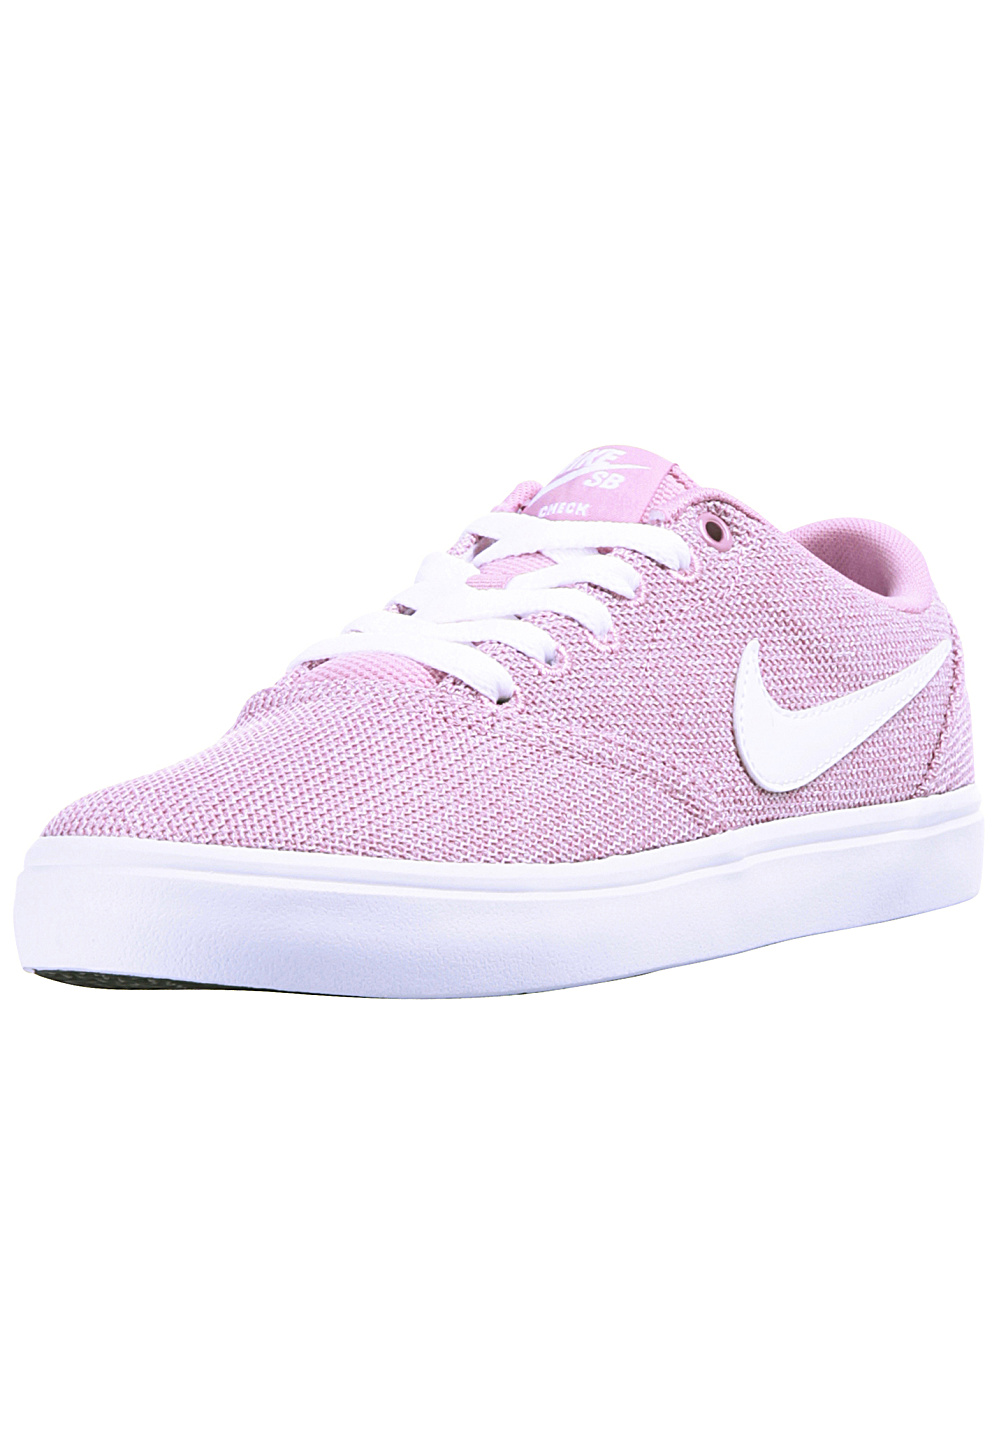 581db89742c NIKE SB Check Solar Canvas P - Sneakers for Women - Pink - Planet Sports